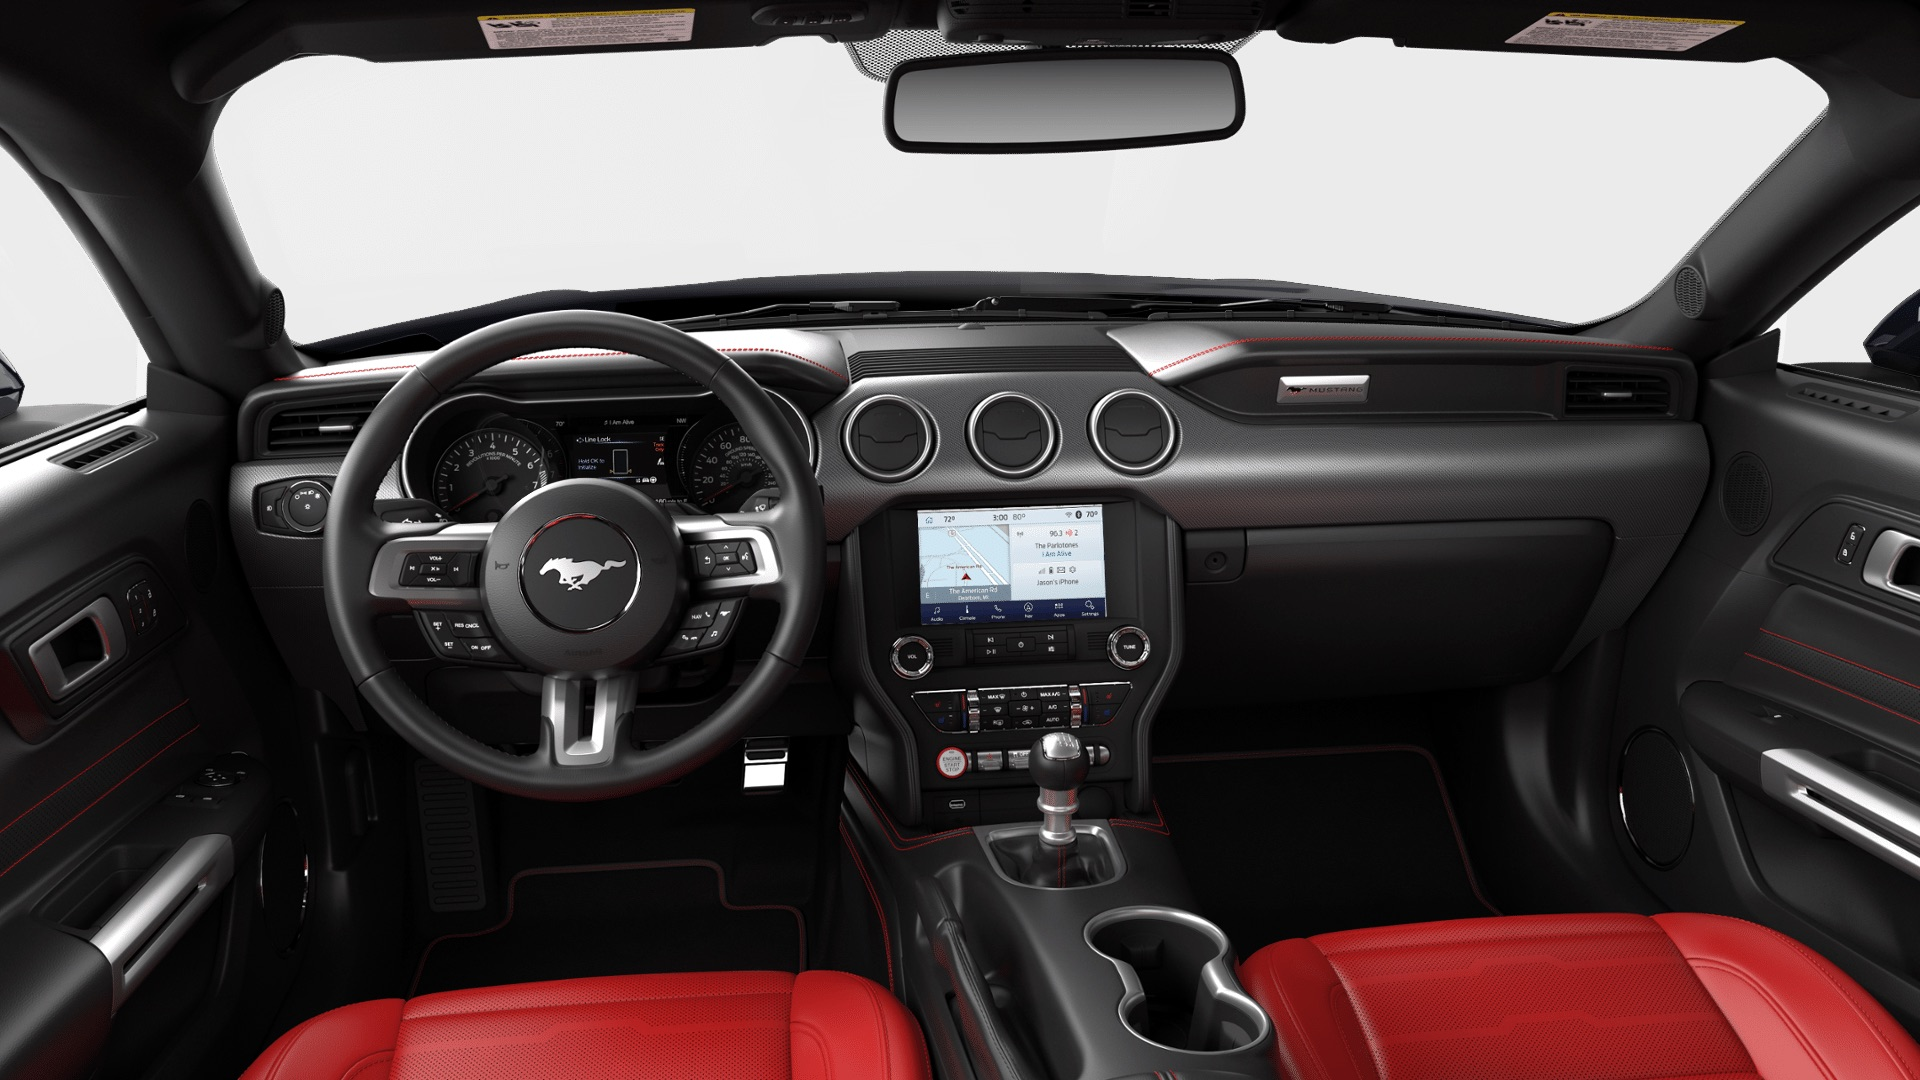 Opting for the high performance package boosts output to about 330 horsepower. 2020 Ford Mustang Interior Colors